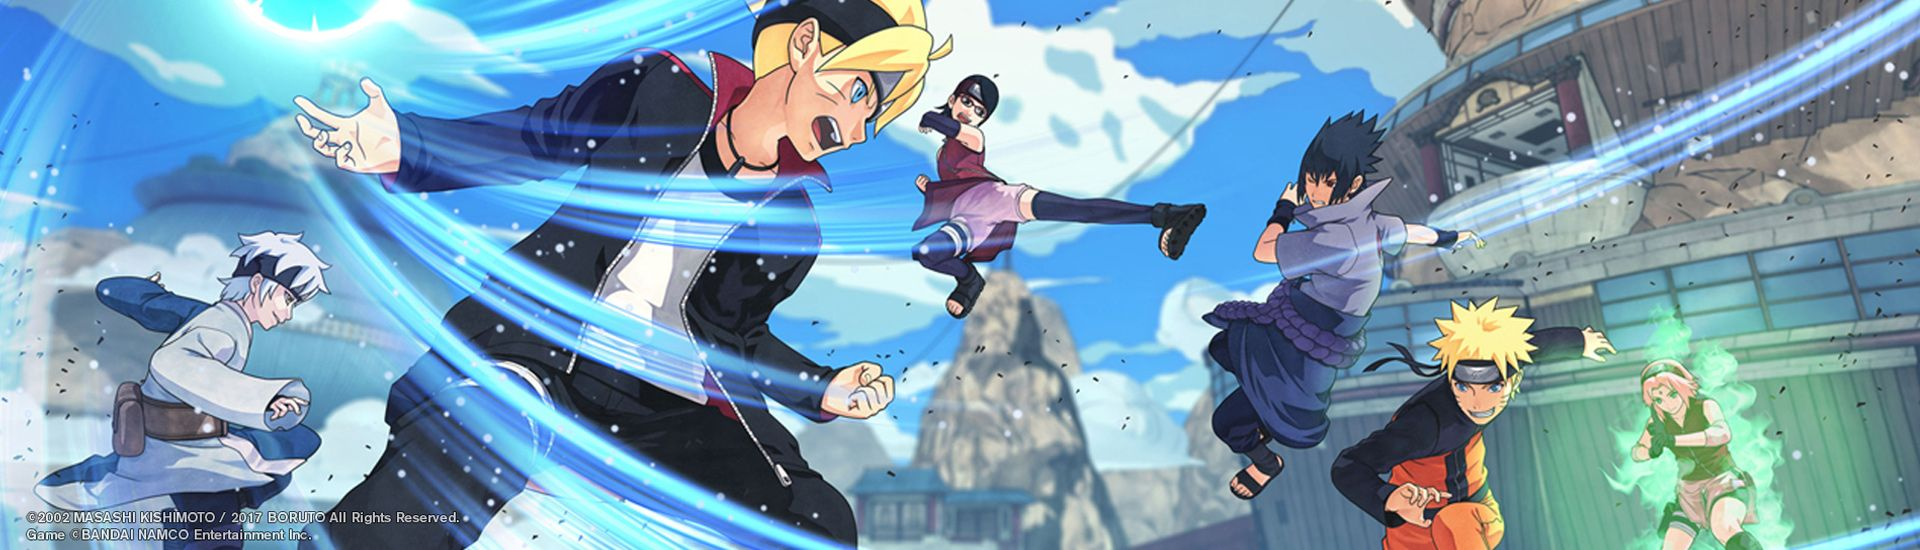 NARUTO | BANDAI NAMCO Entertainment Europe